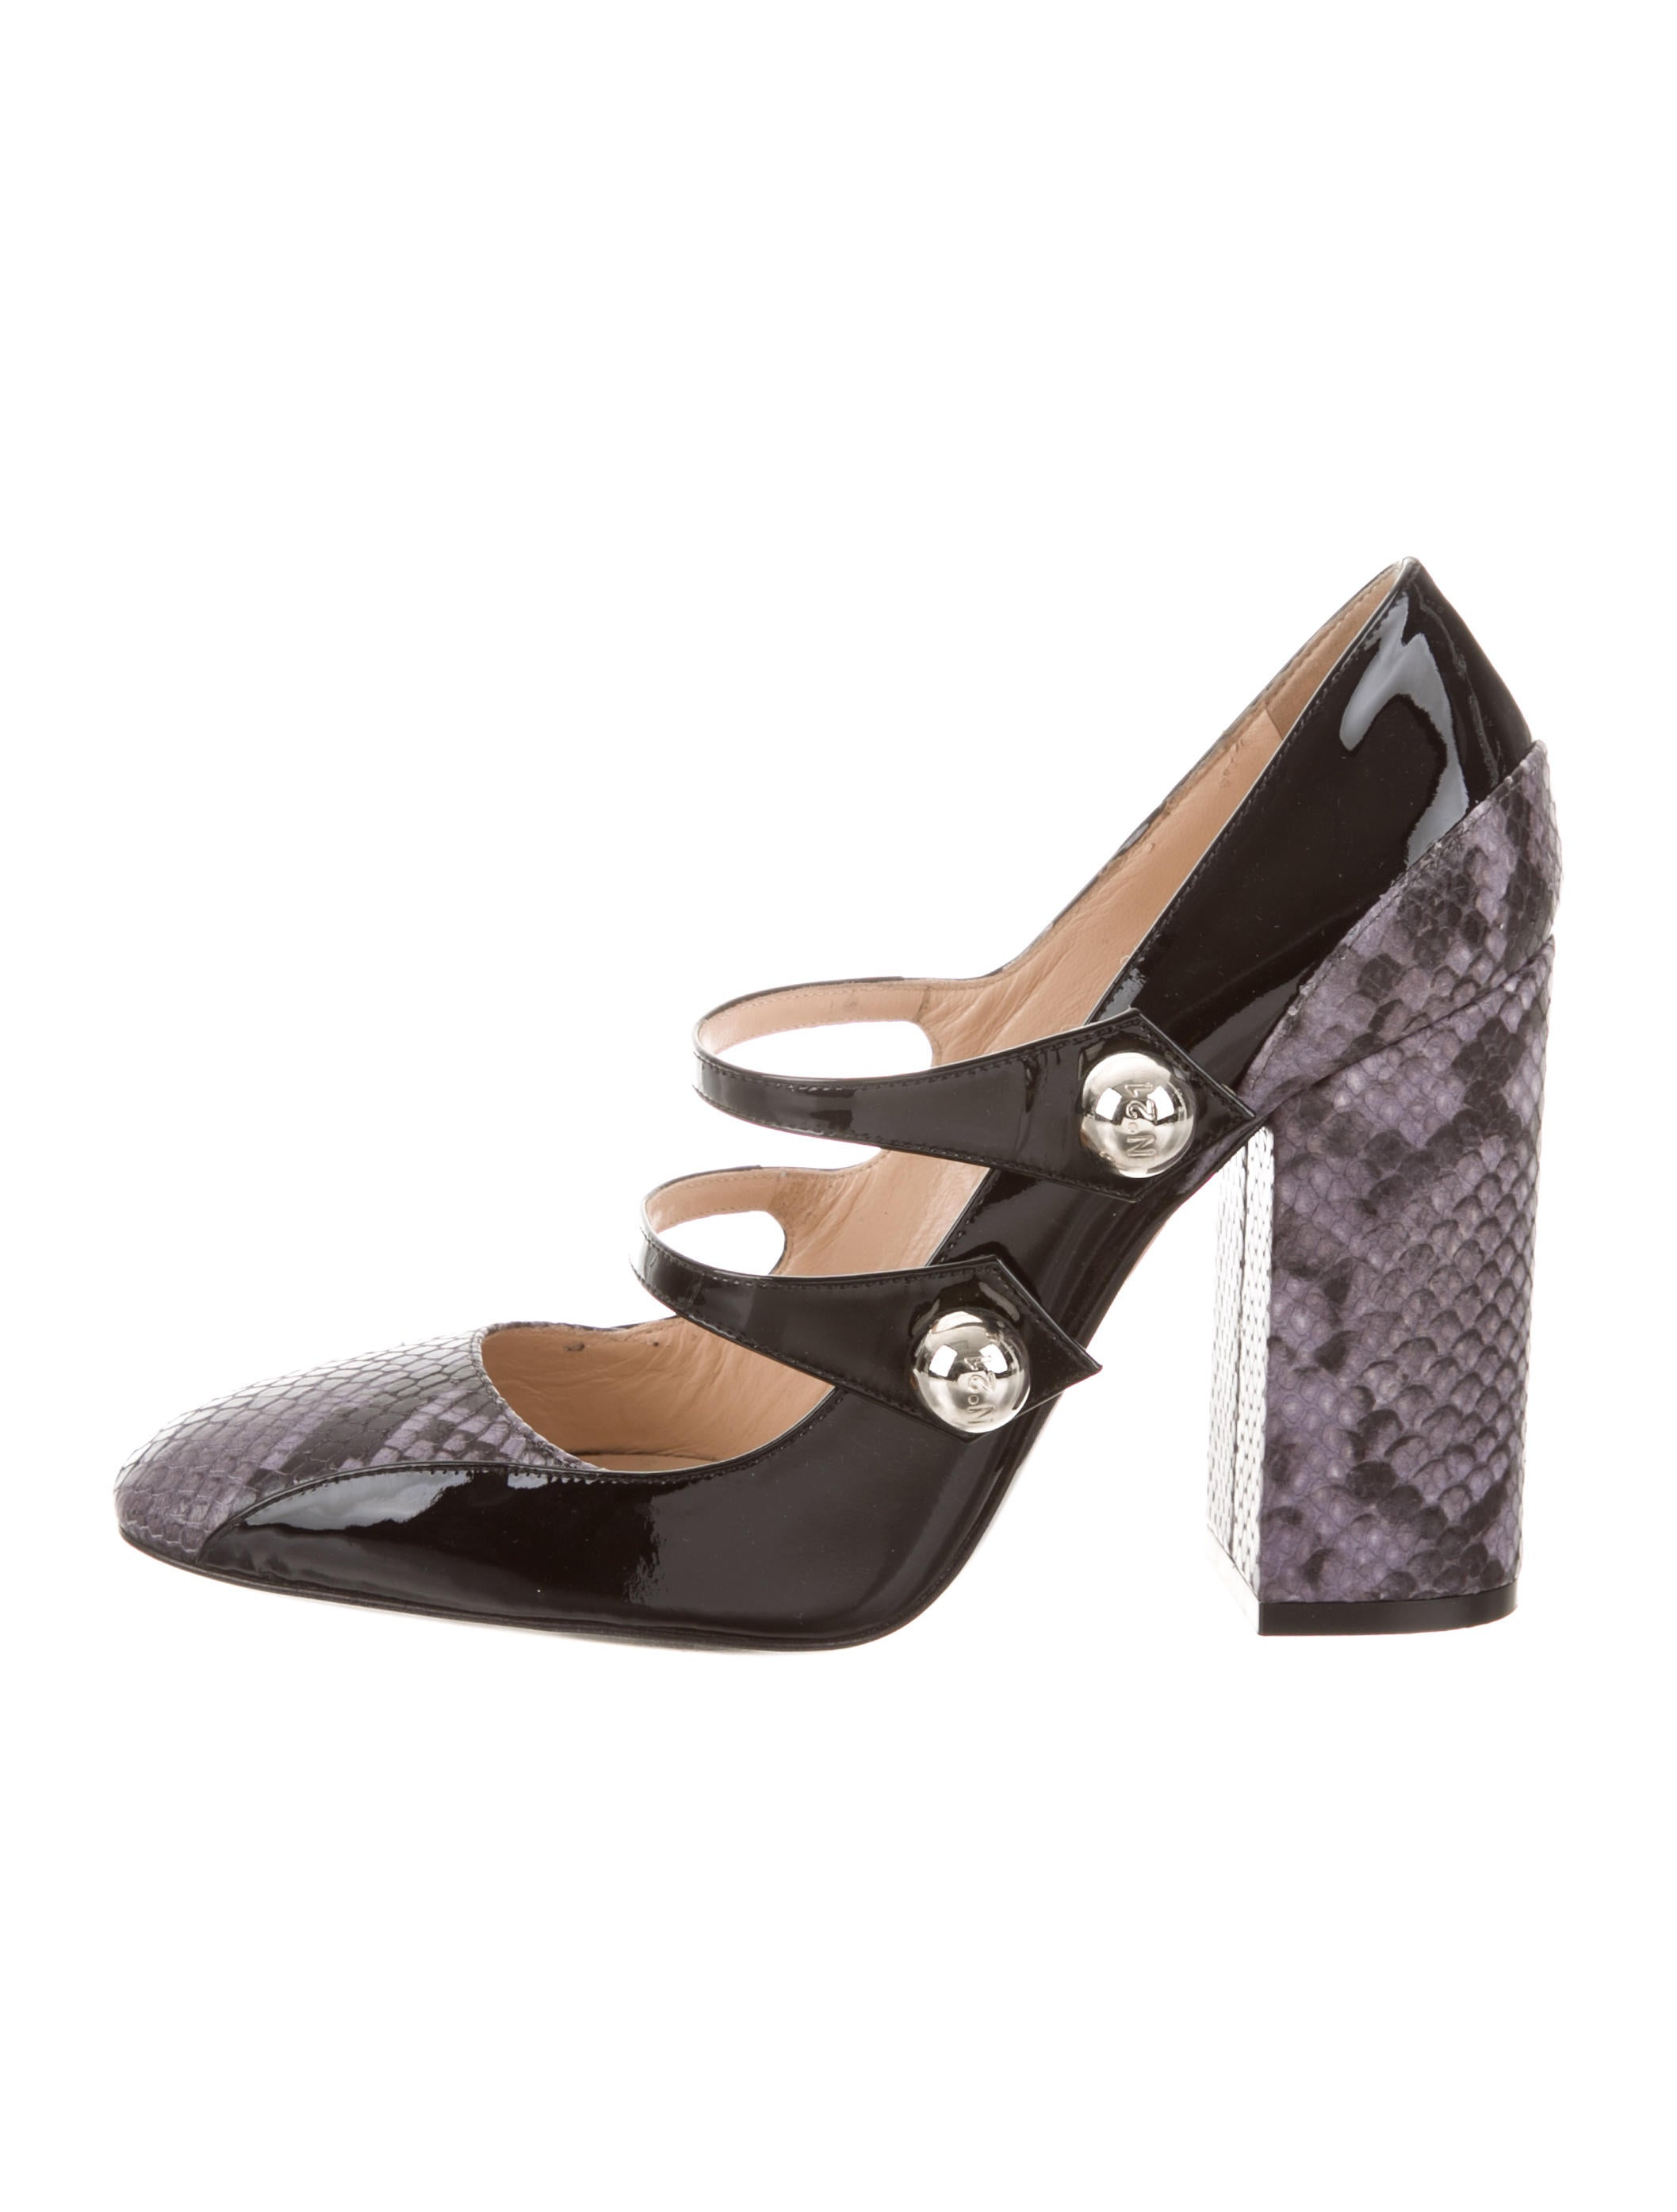 clearance finishline No. 21 Patent Leather Multistrap Pumps sale for sale cheap price store sale nicekicks SAxiPsHrt